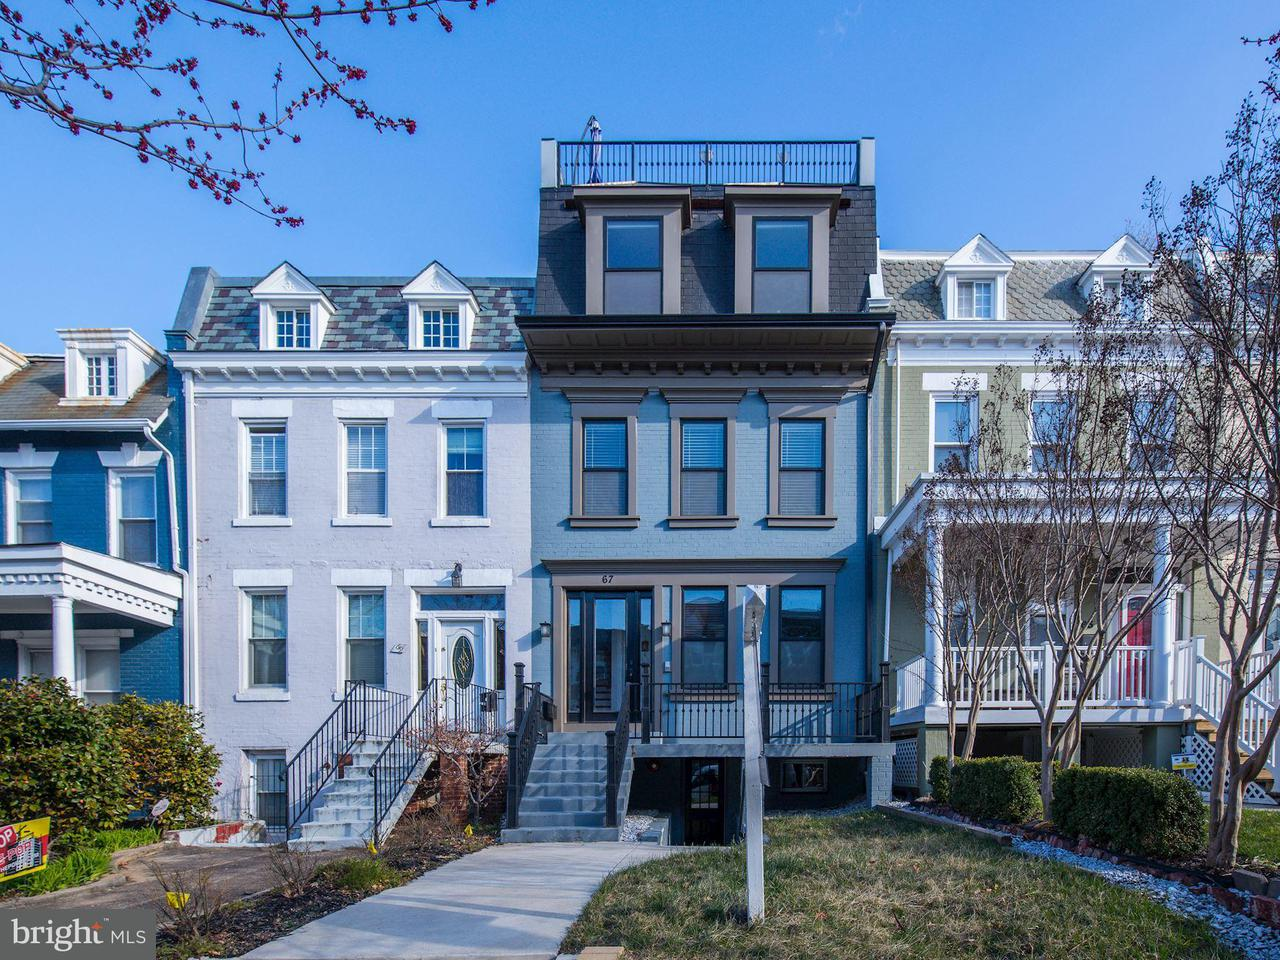 Condominium for Sale at 67 V St NW #3 Washington, District Of Columbia 20001 United States